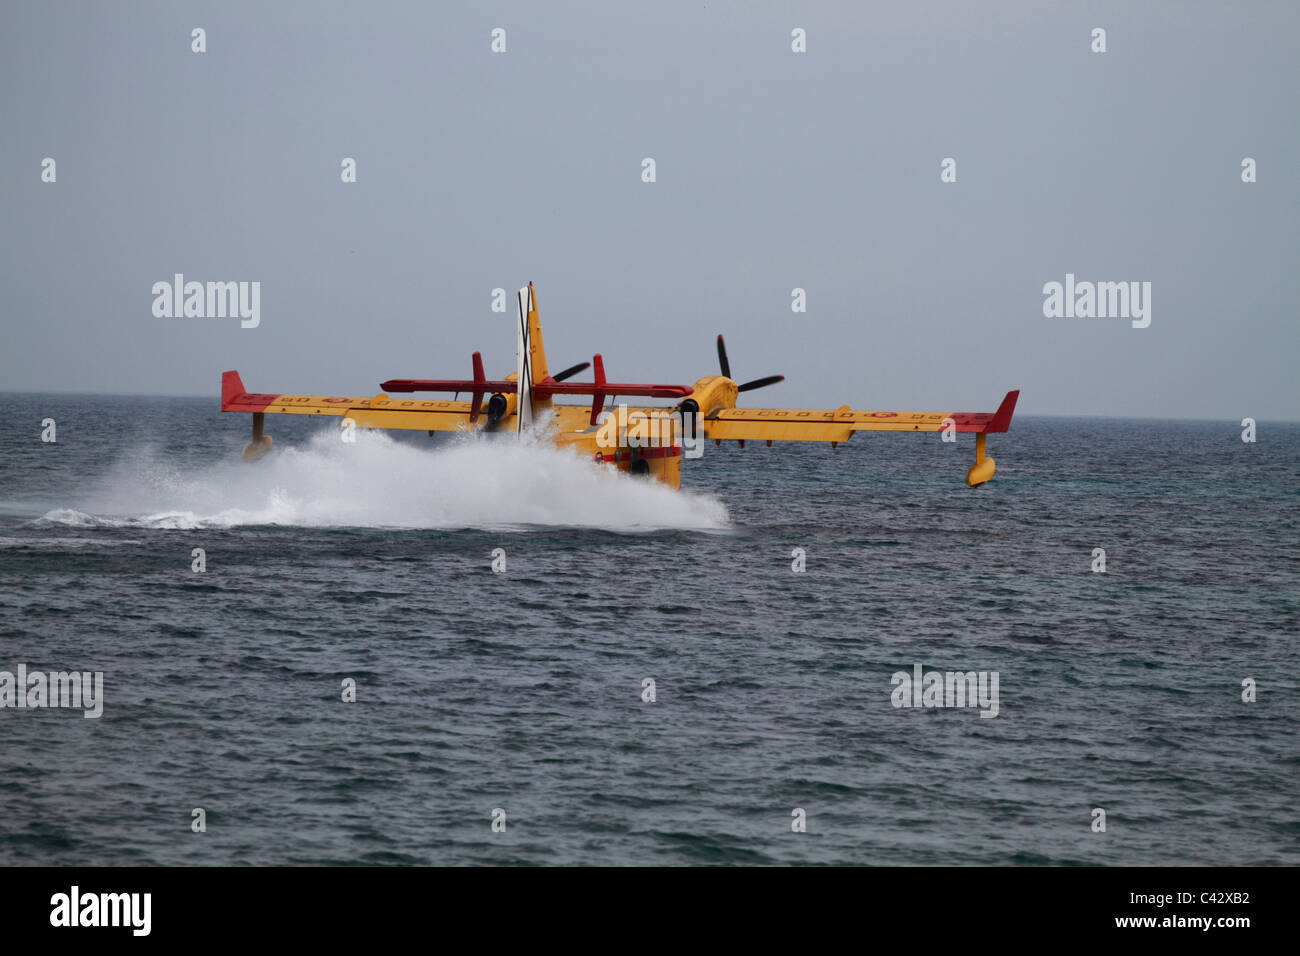 Canadair CL-145 firefighting plane tanking water - Stock Image